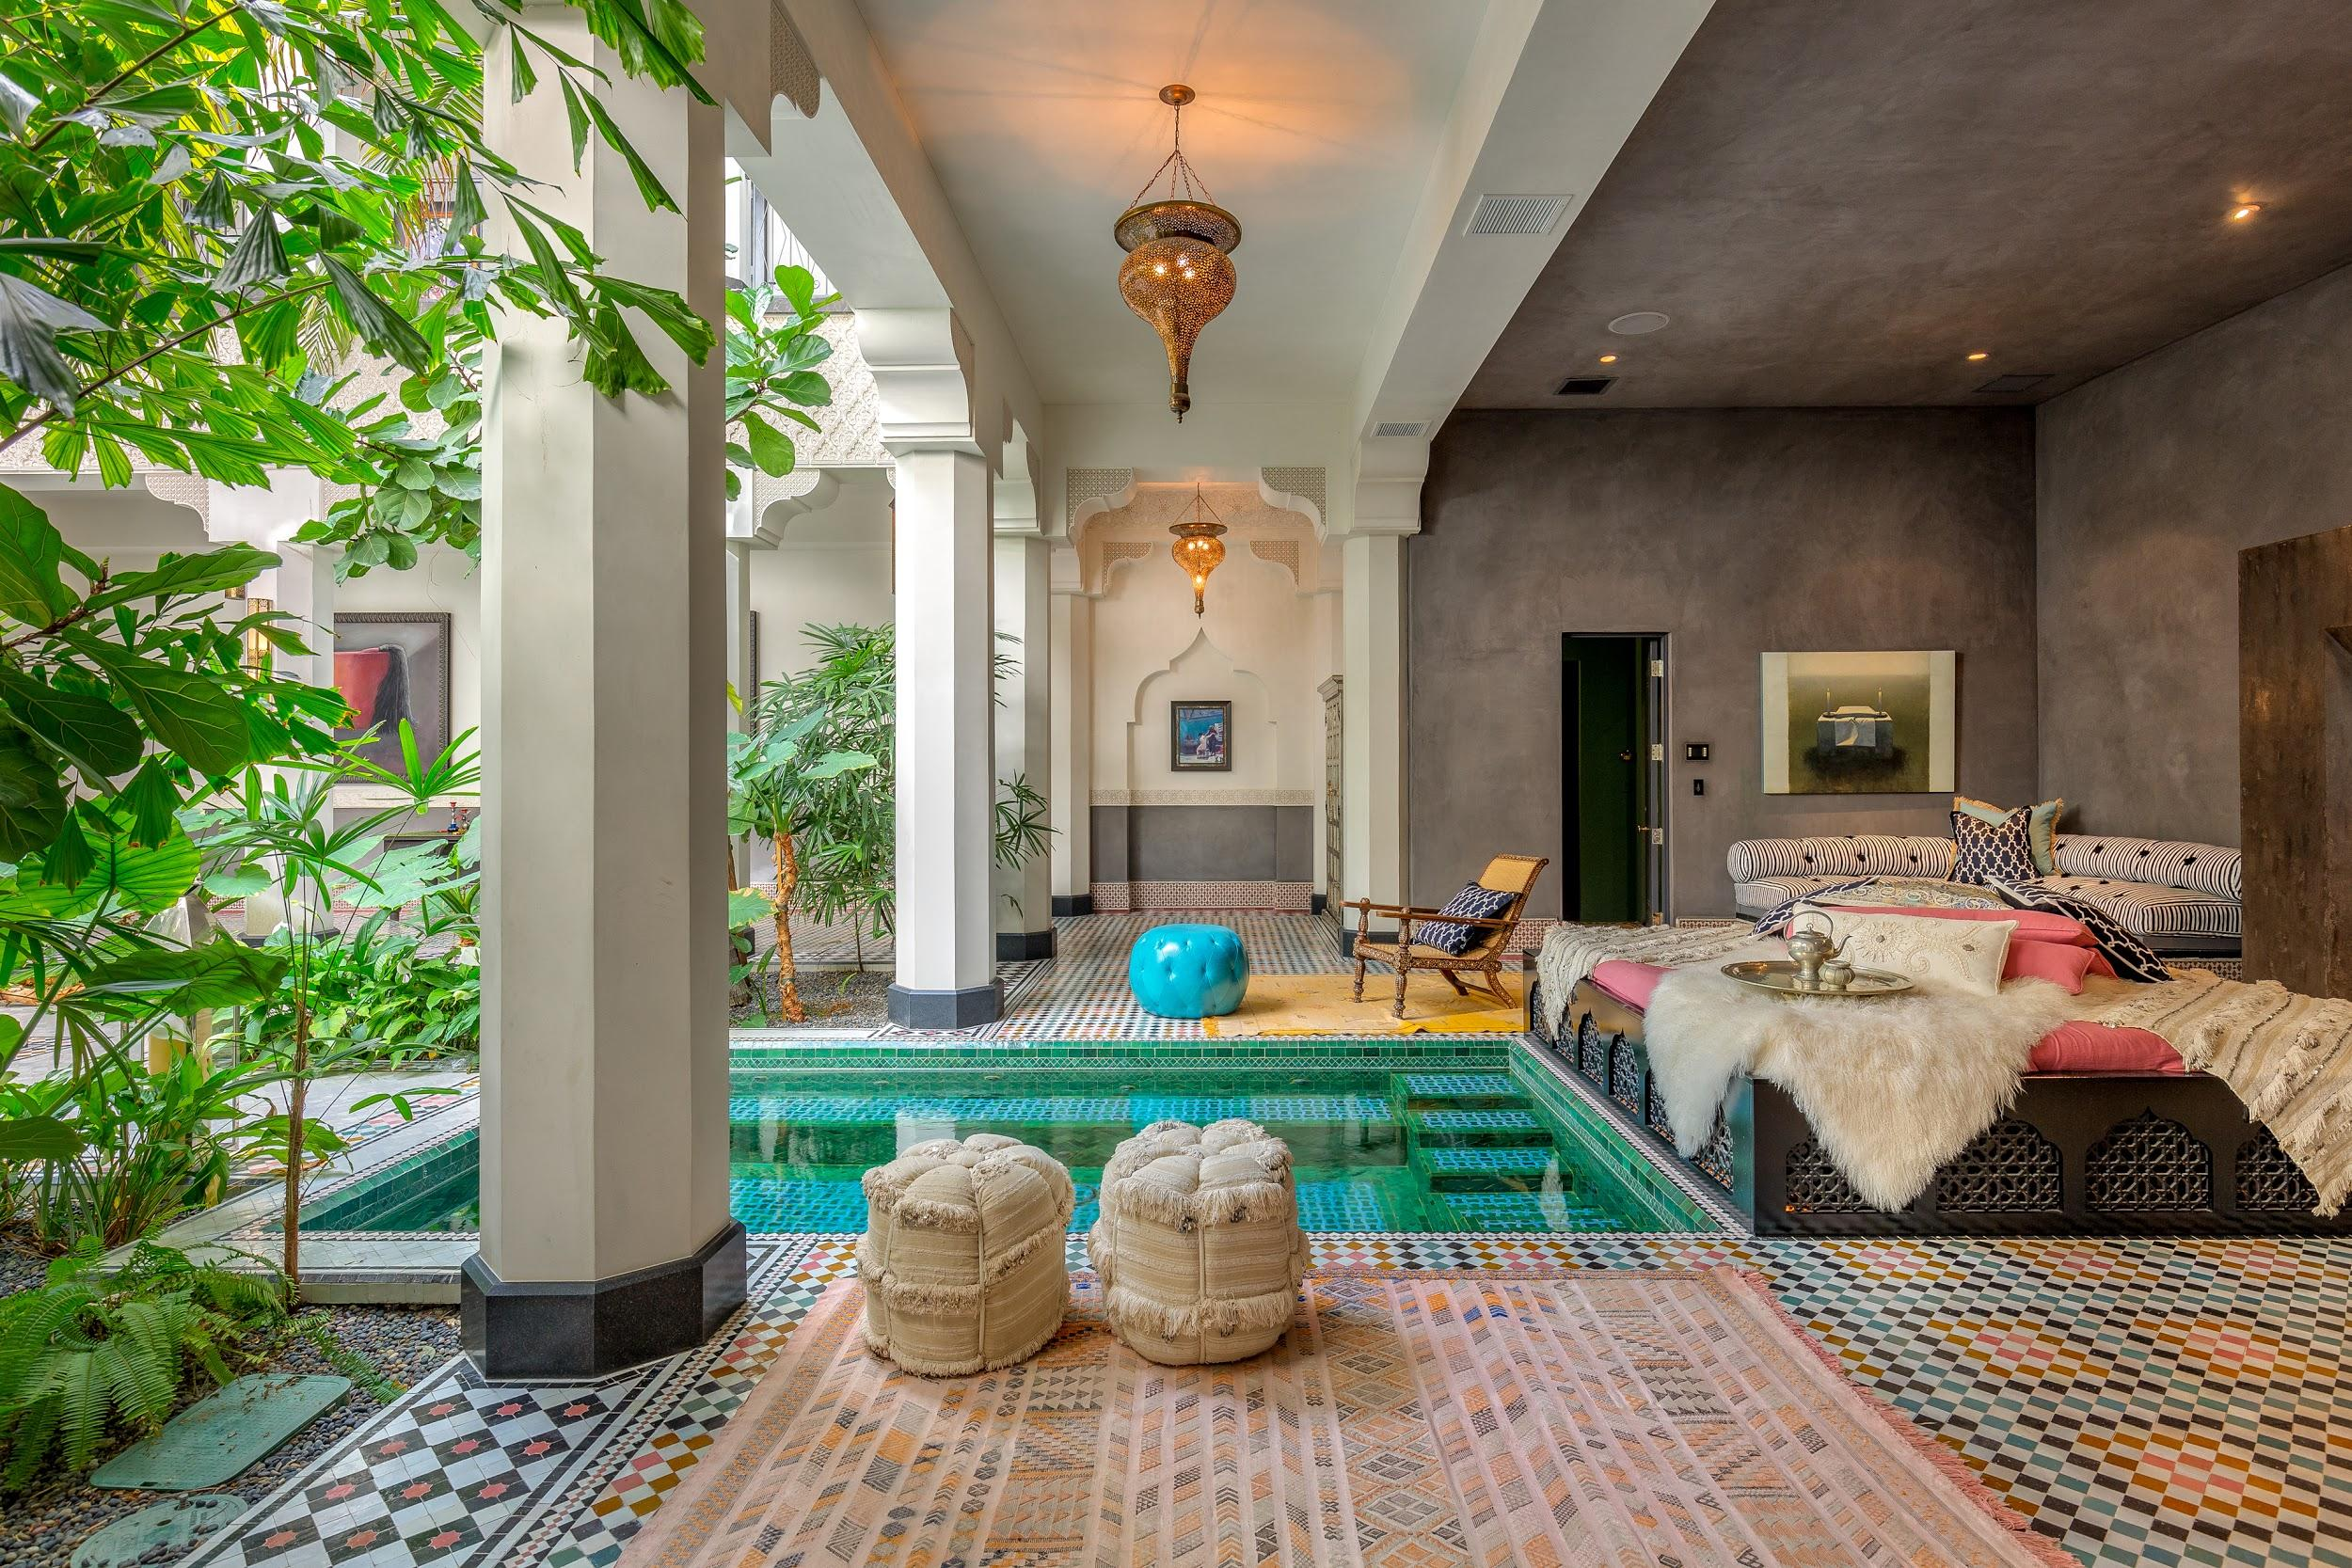 3 Serene Moroccan-Style Mansions in SoCal